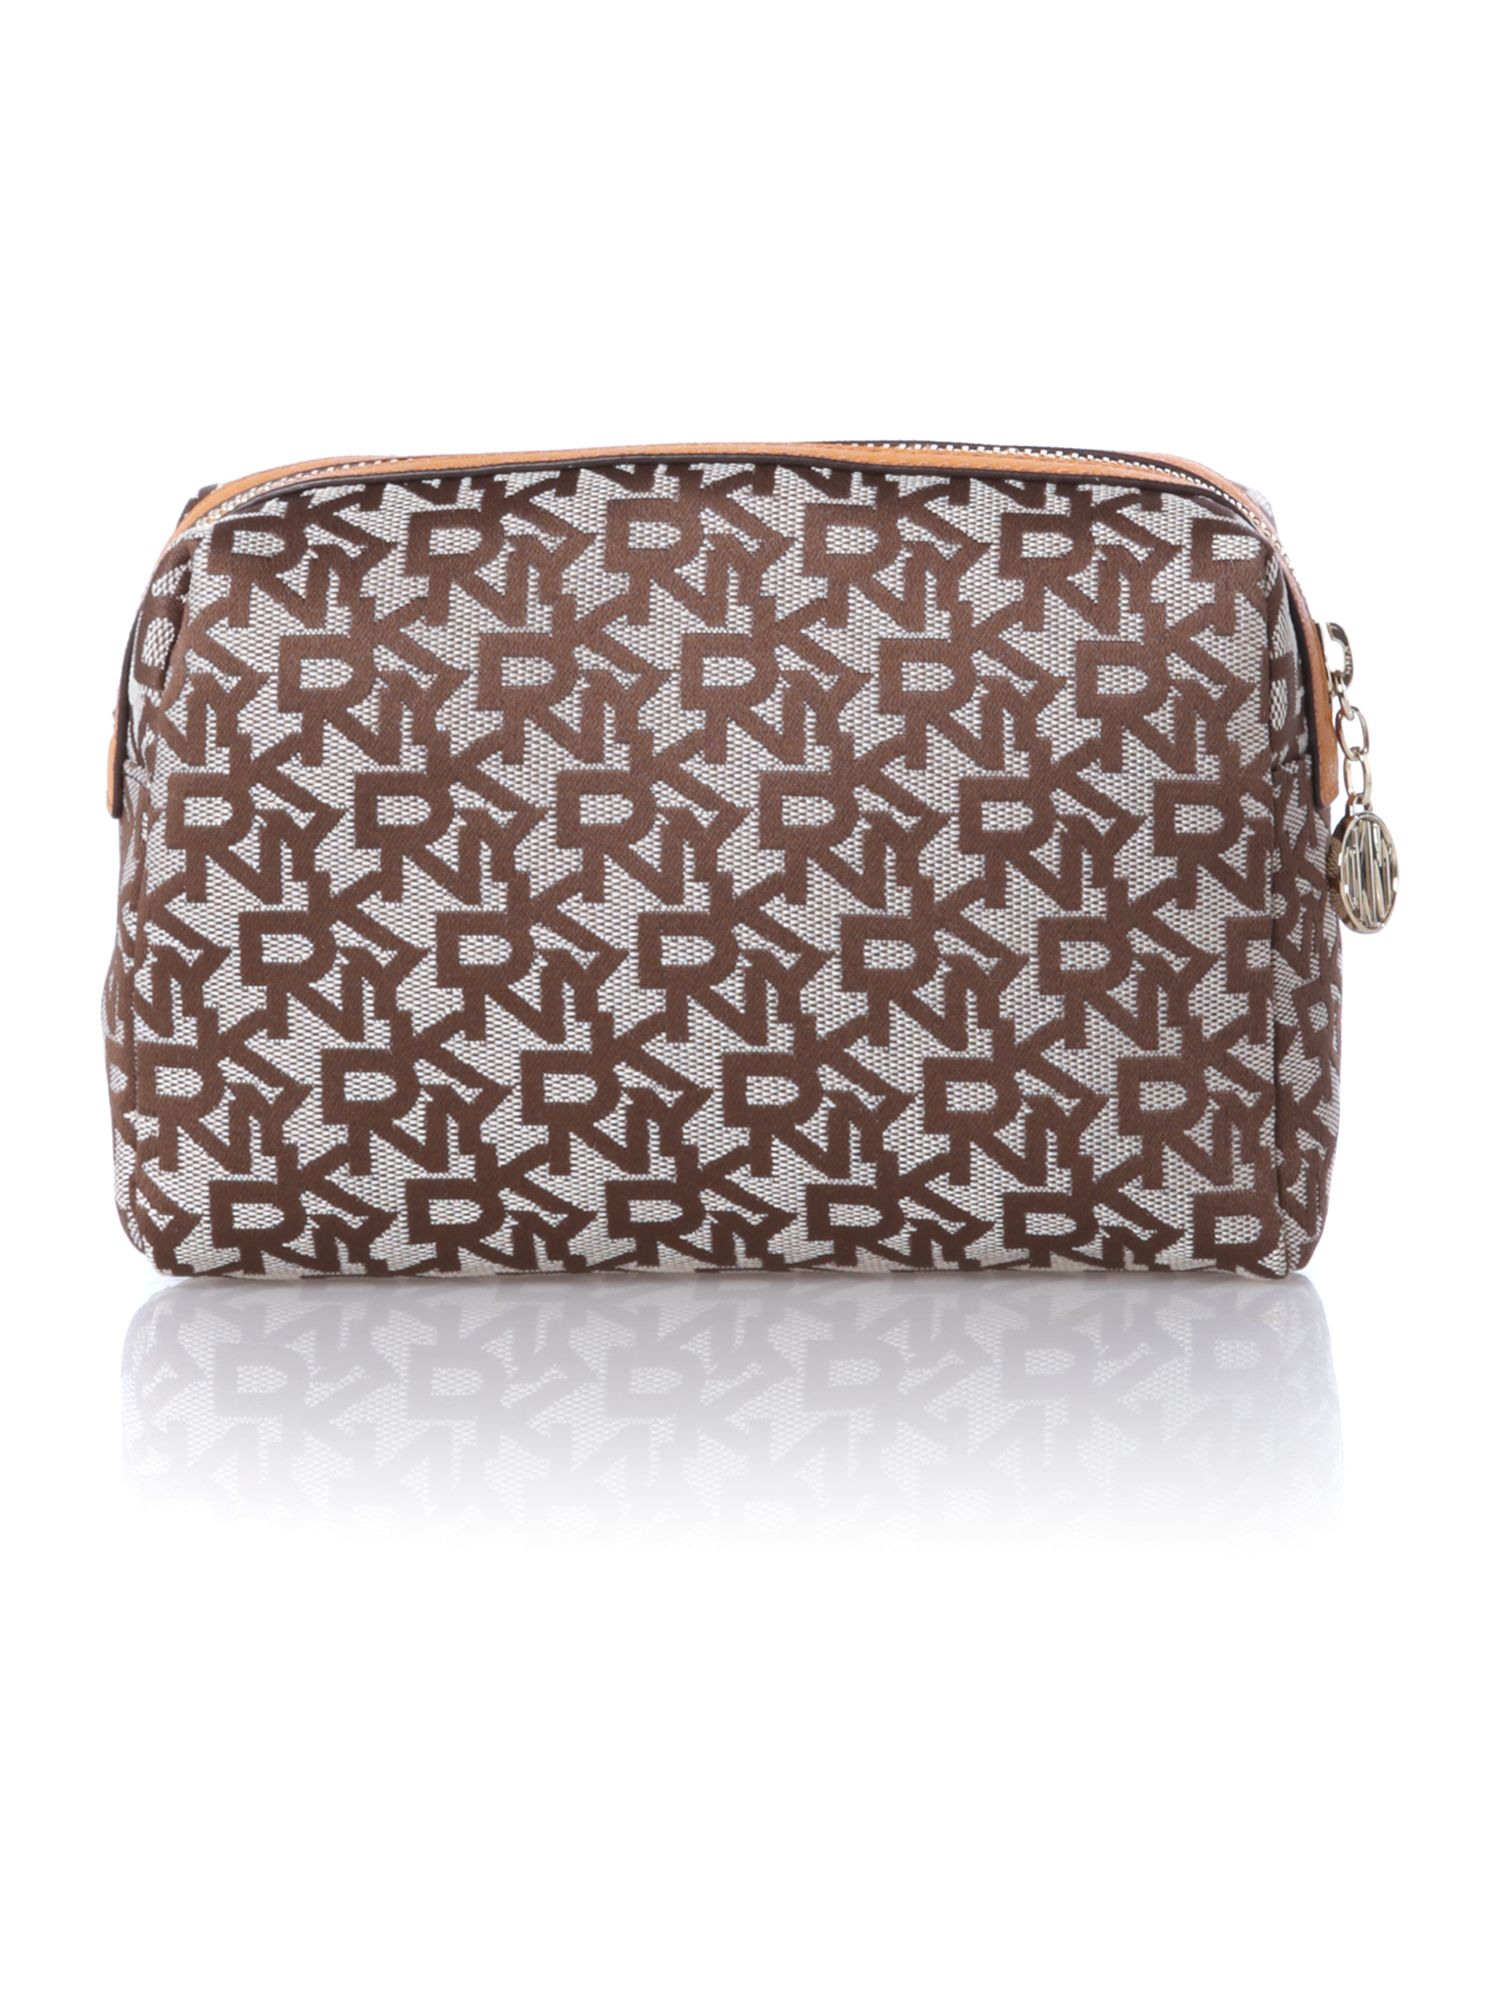 Saffiano tan cosmetic bag